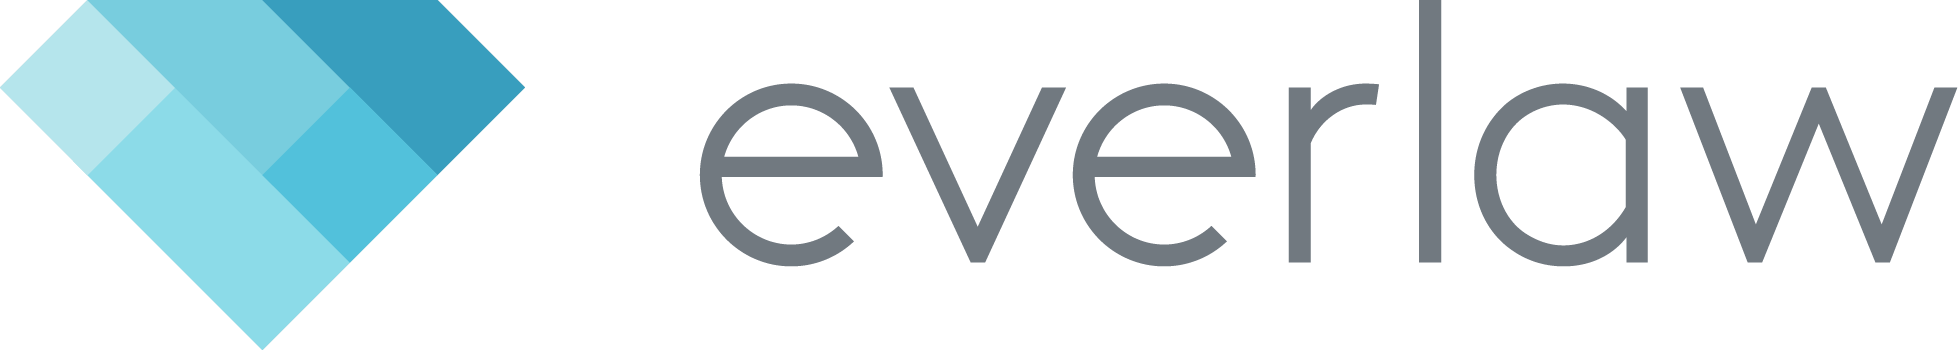 Everlaw - Product Designer